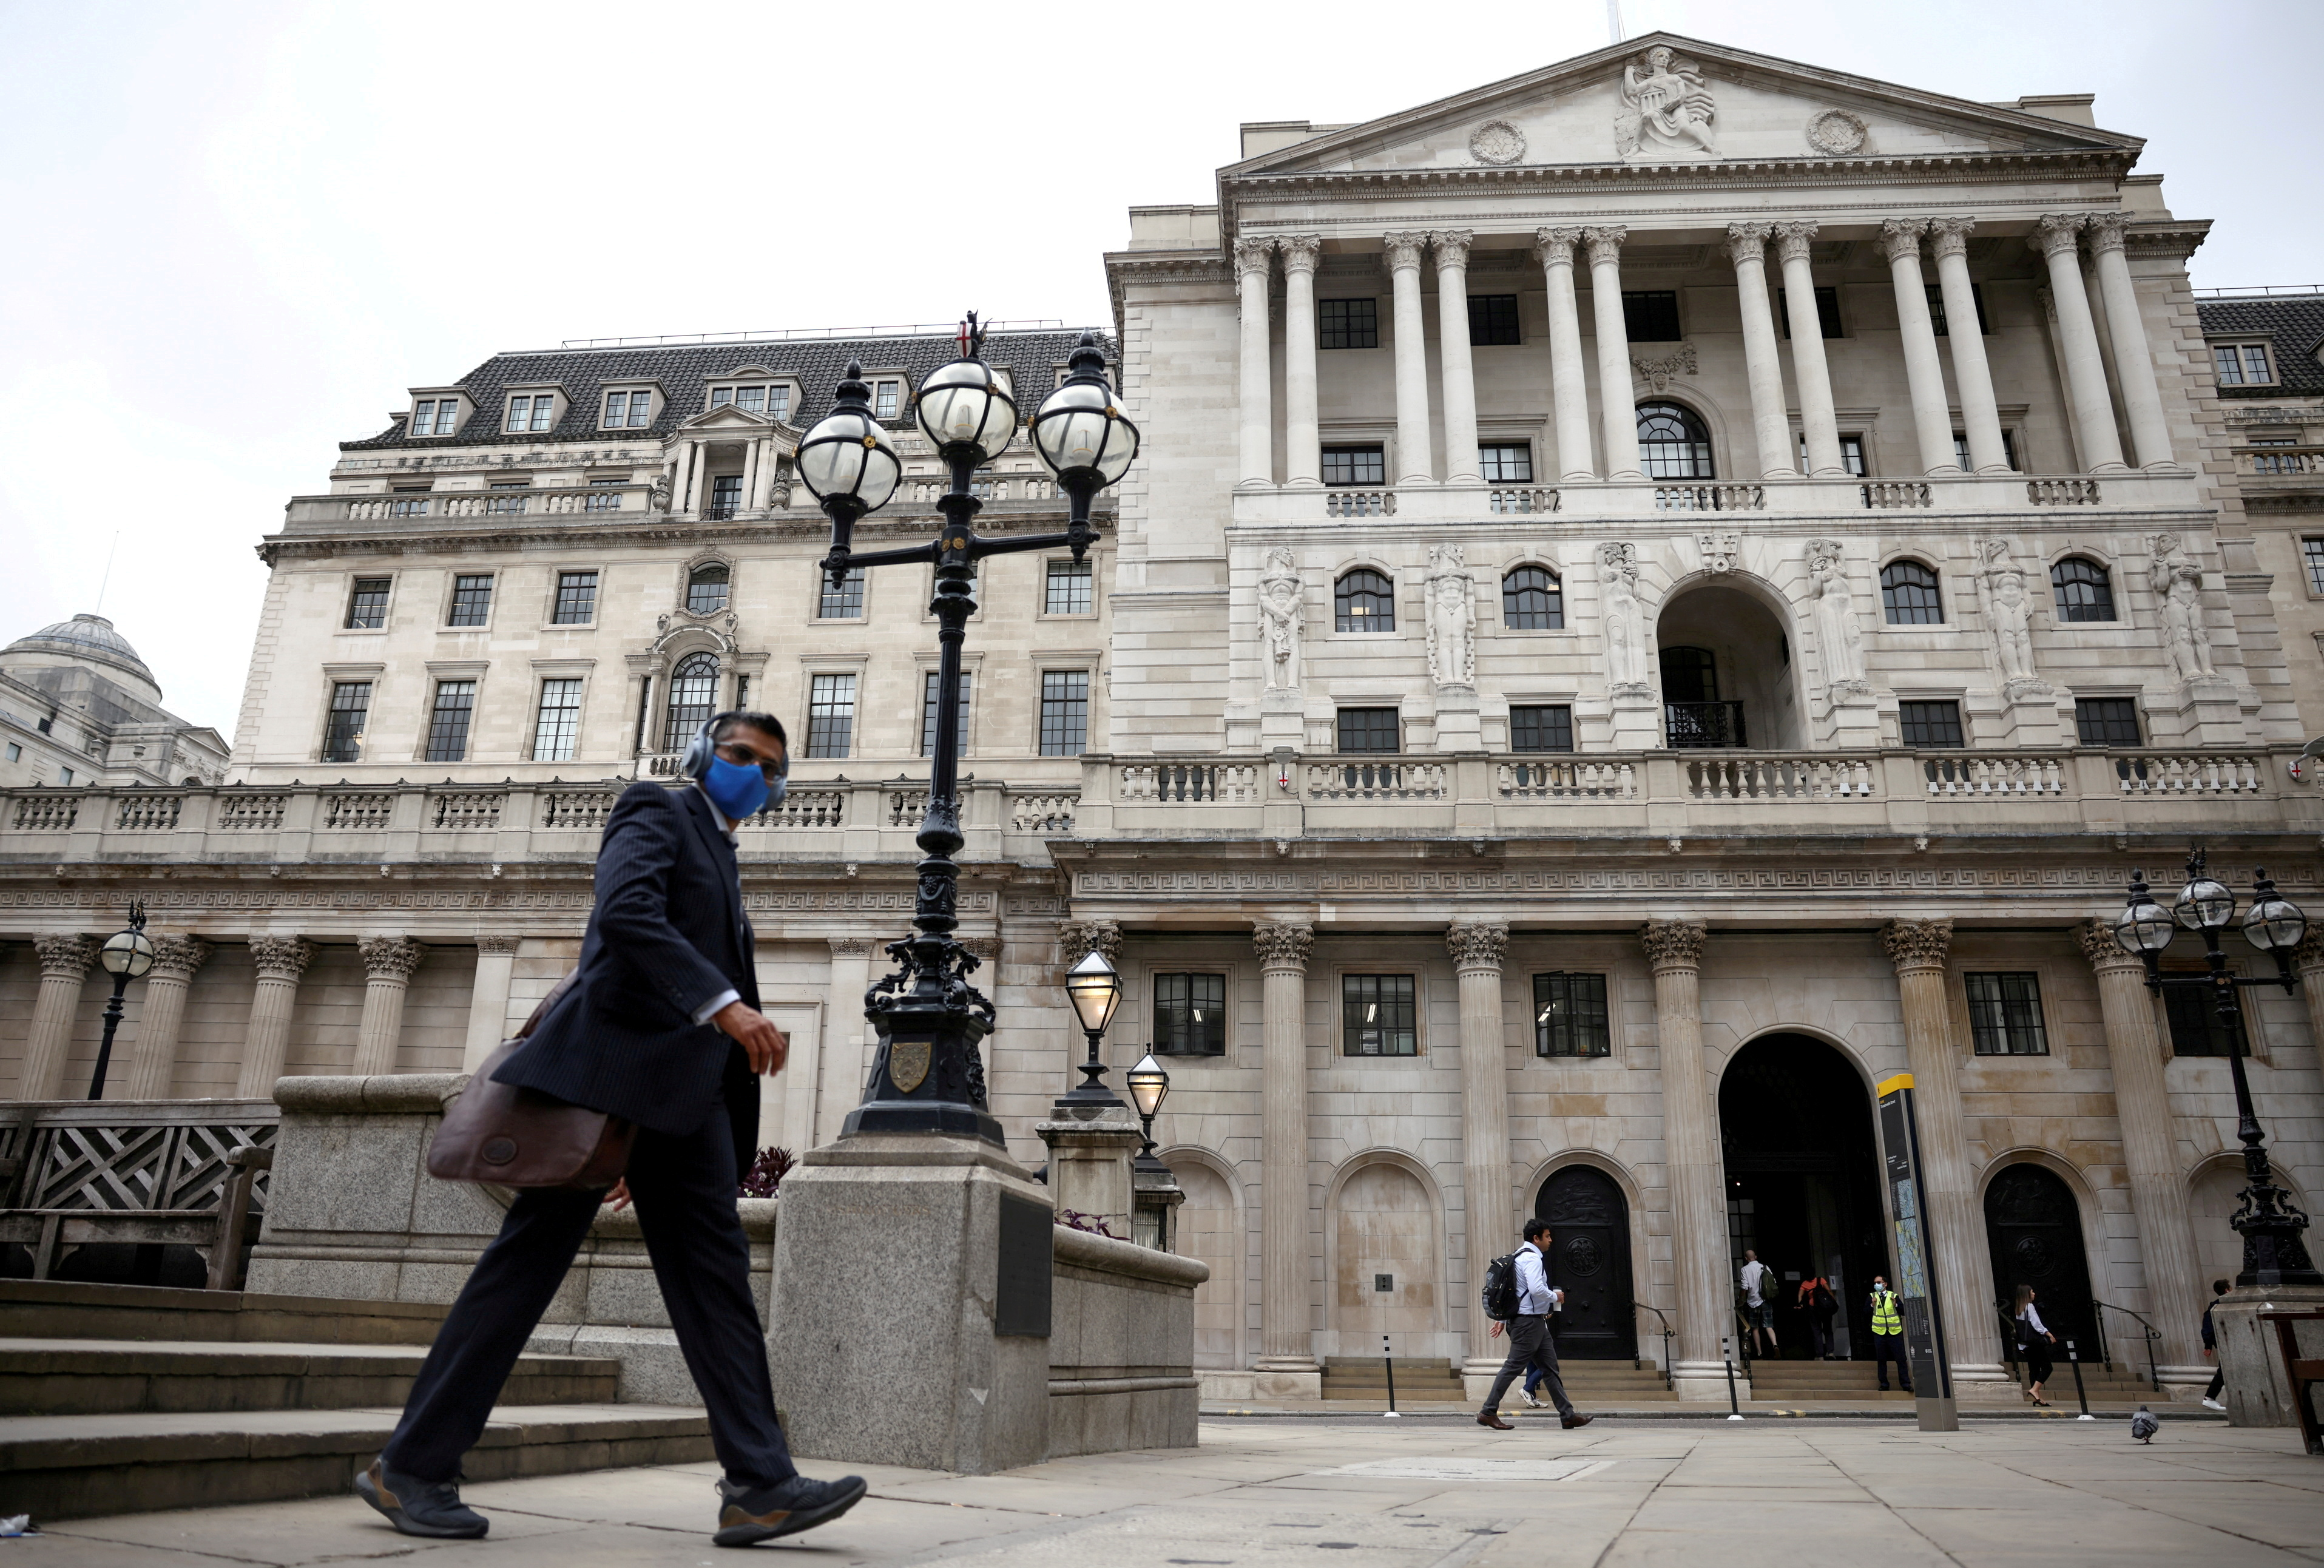 A person walks past the Bank of England in the City of London financial district, in London, Britain, June 11, 2021. REUTERS/Henry Nicholls/File Photo